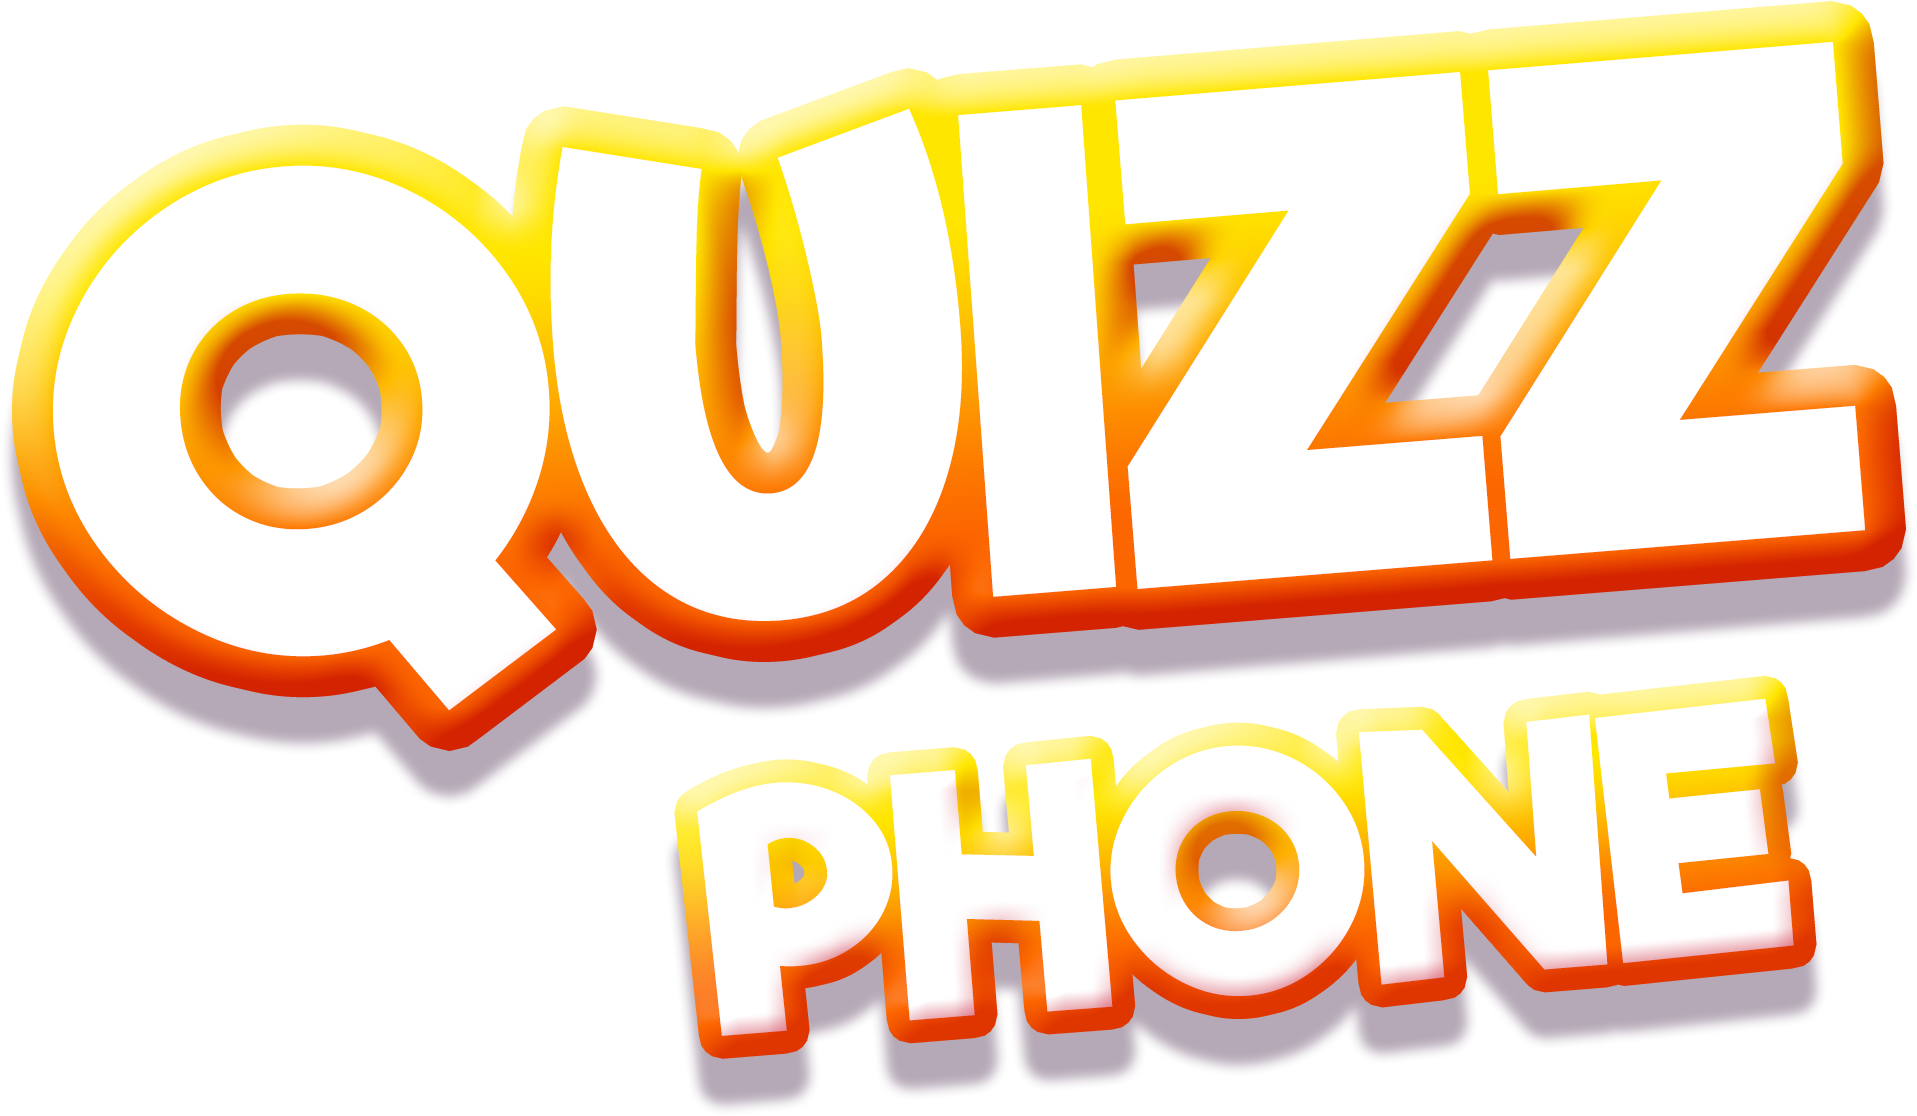 Contact - Quizz Phone